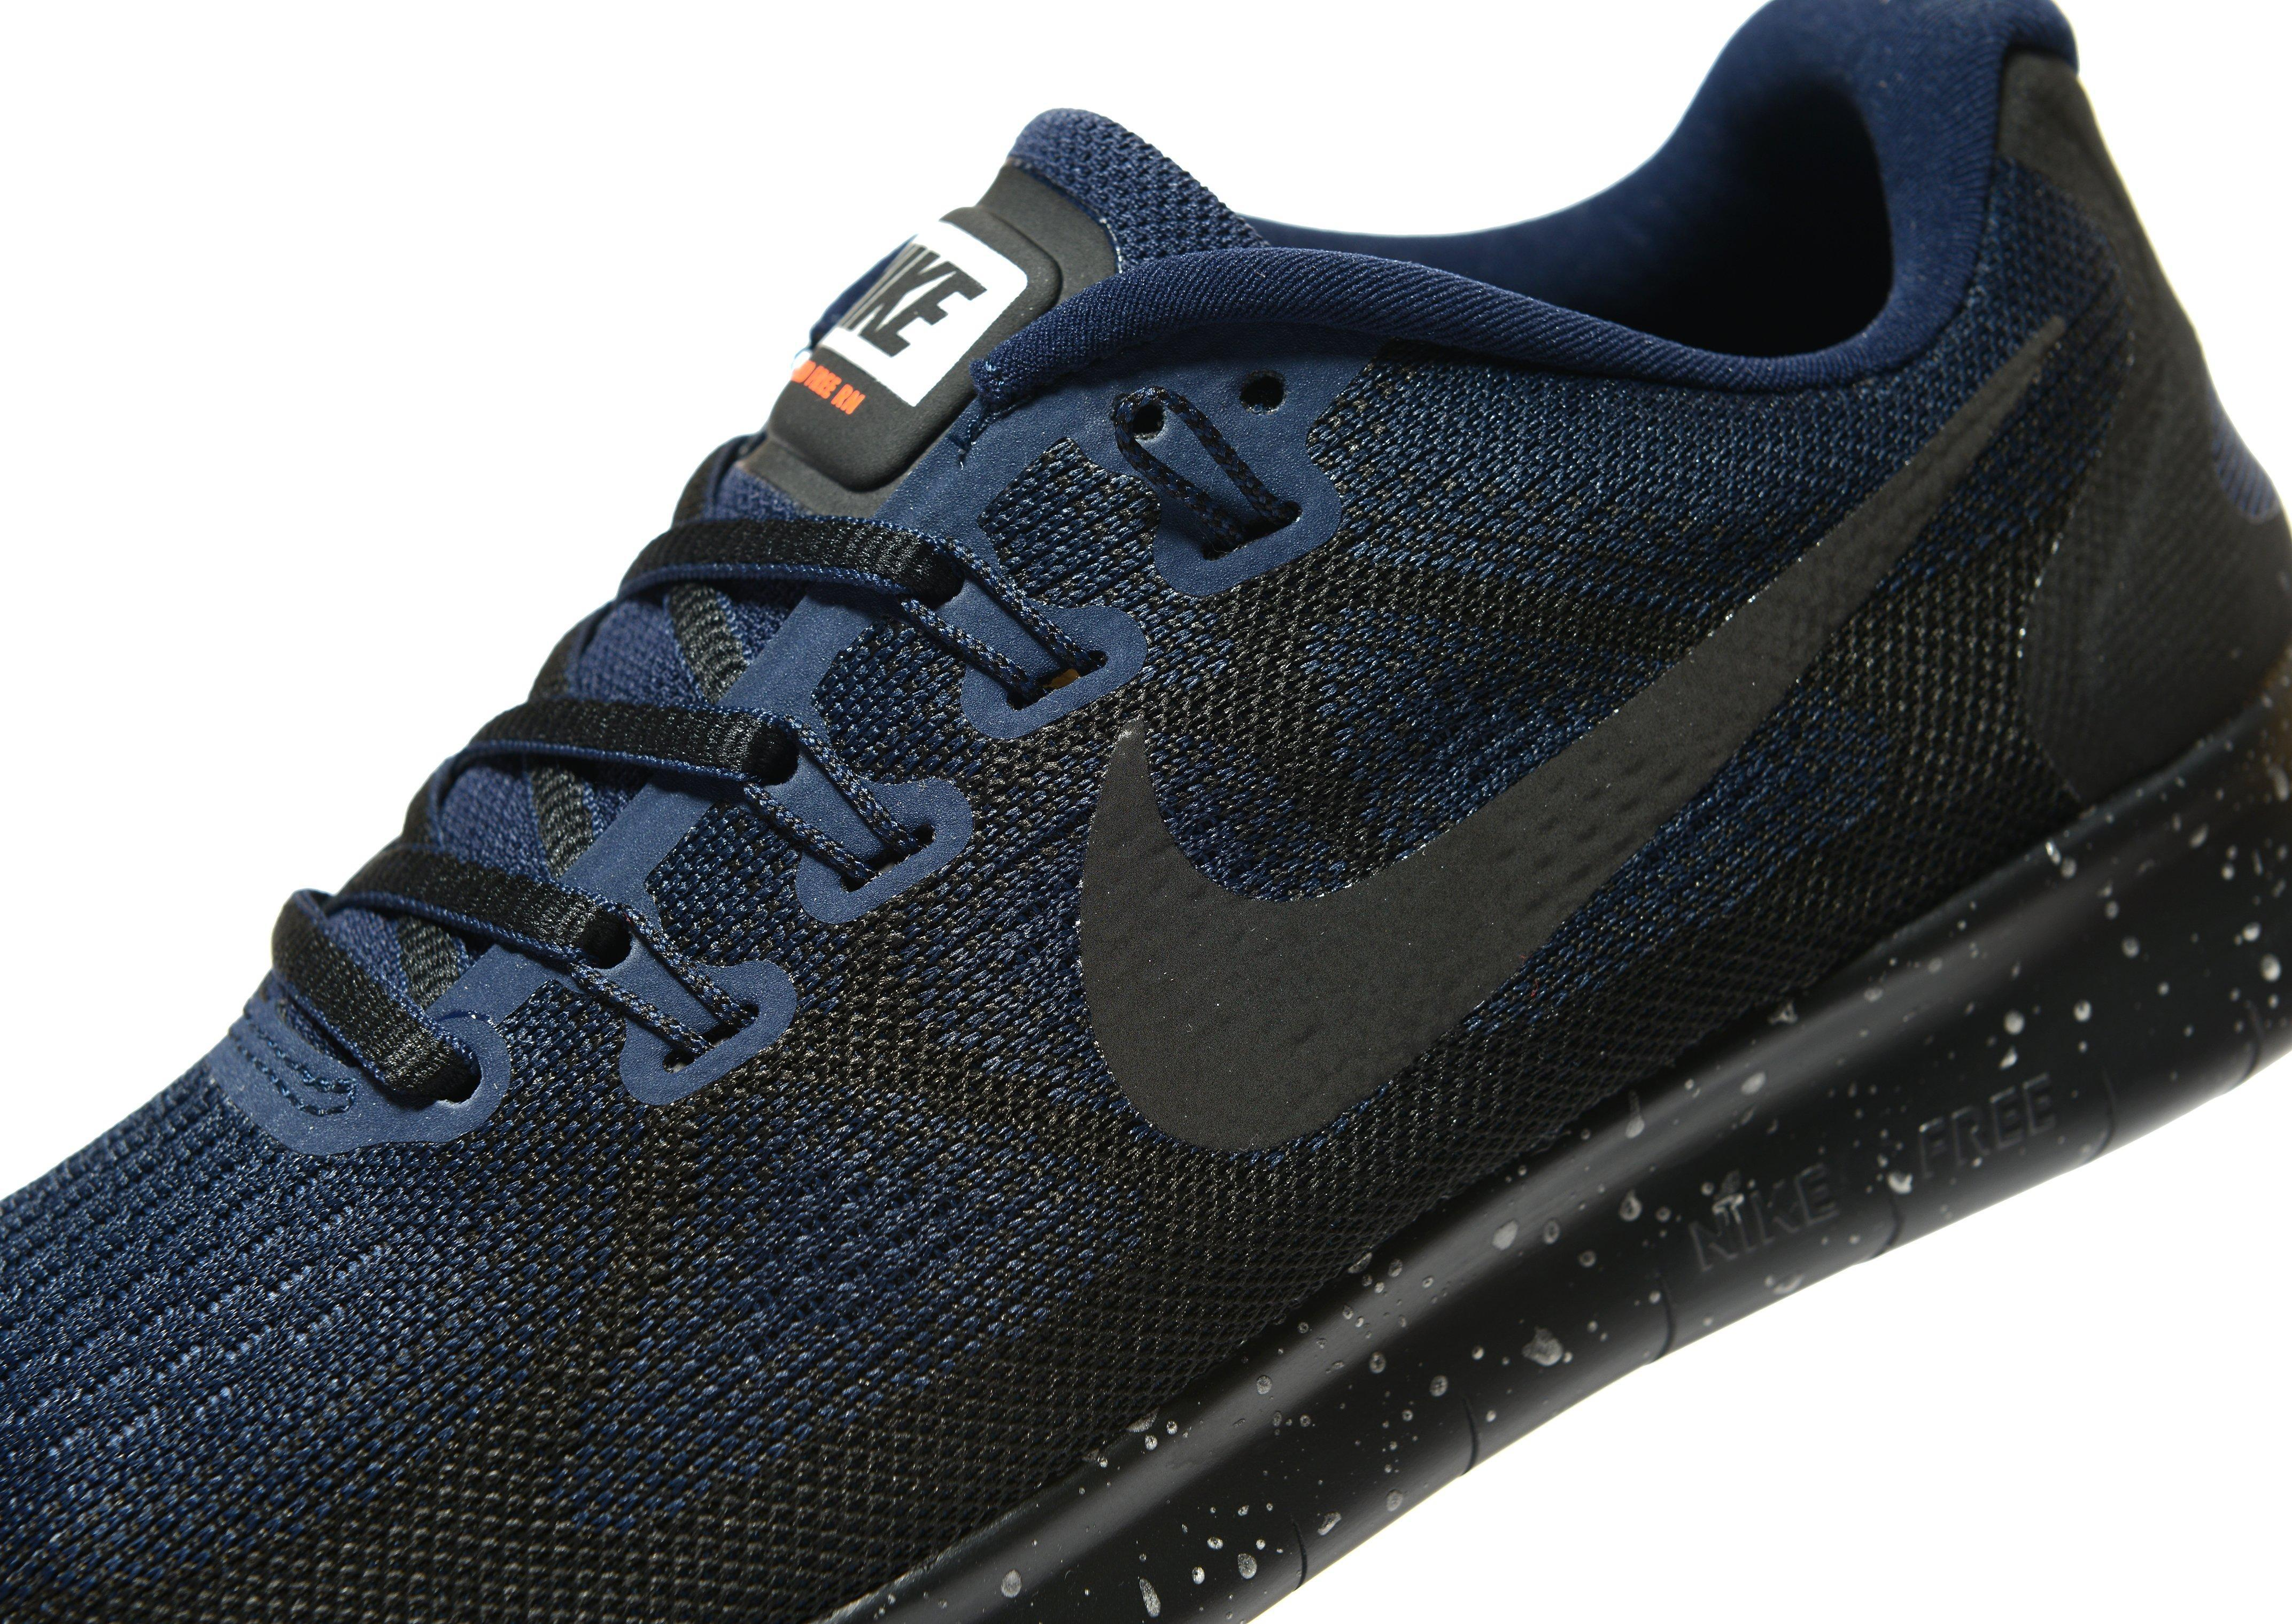 salvar Destino Normal  Nike Synthetic Free Run Shield in Black/Blue (Blue) - Lyst